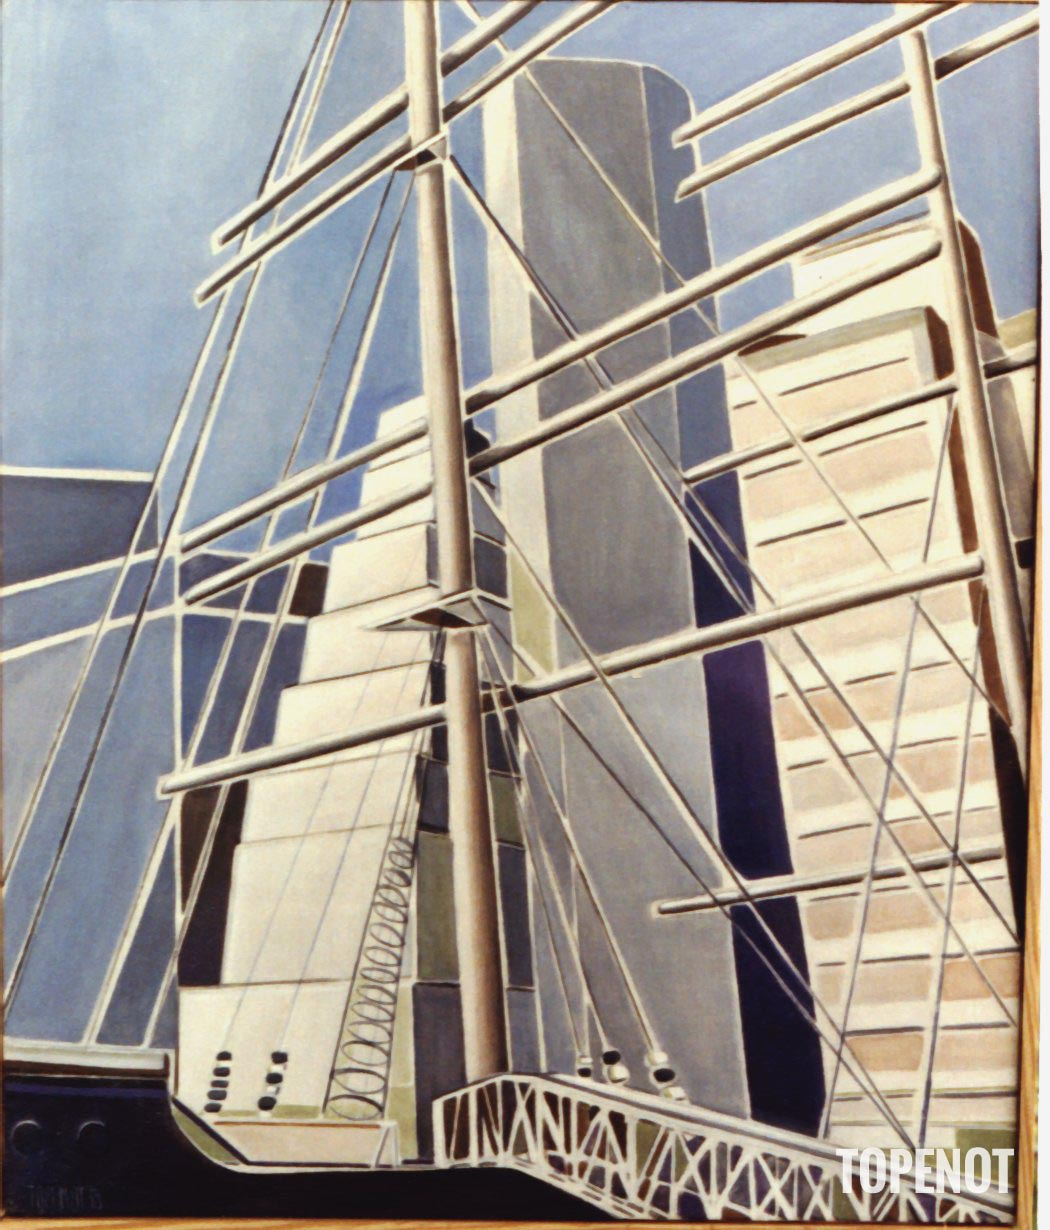 New-York-Musee-Nautique-II-Huile-1985-79x54